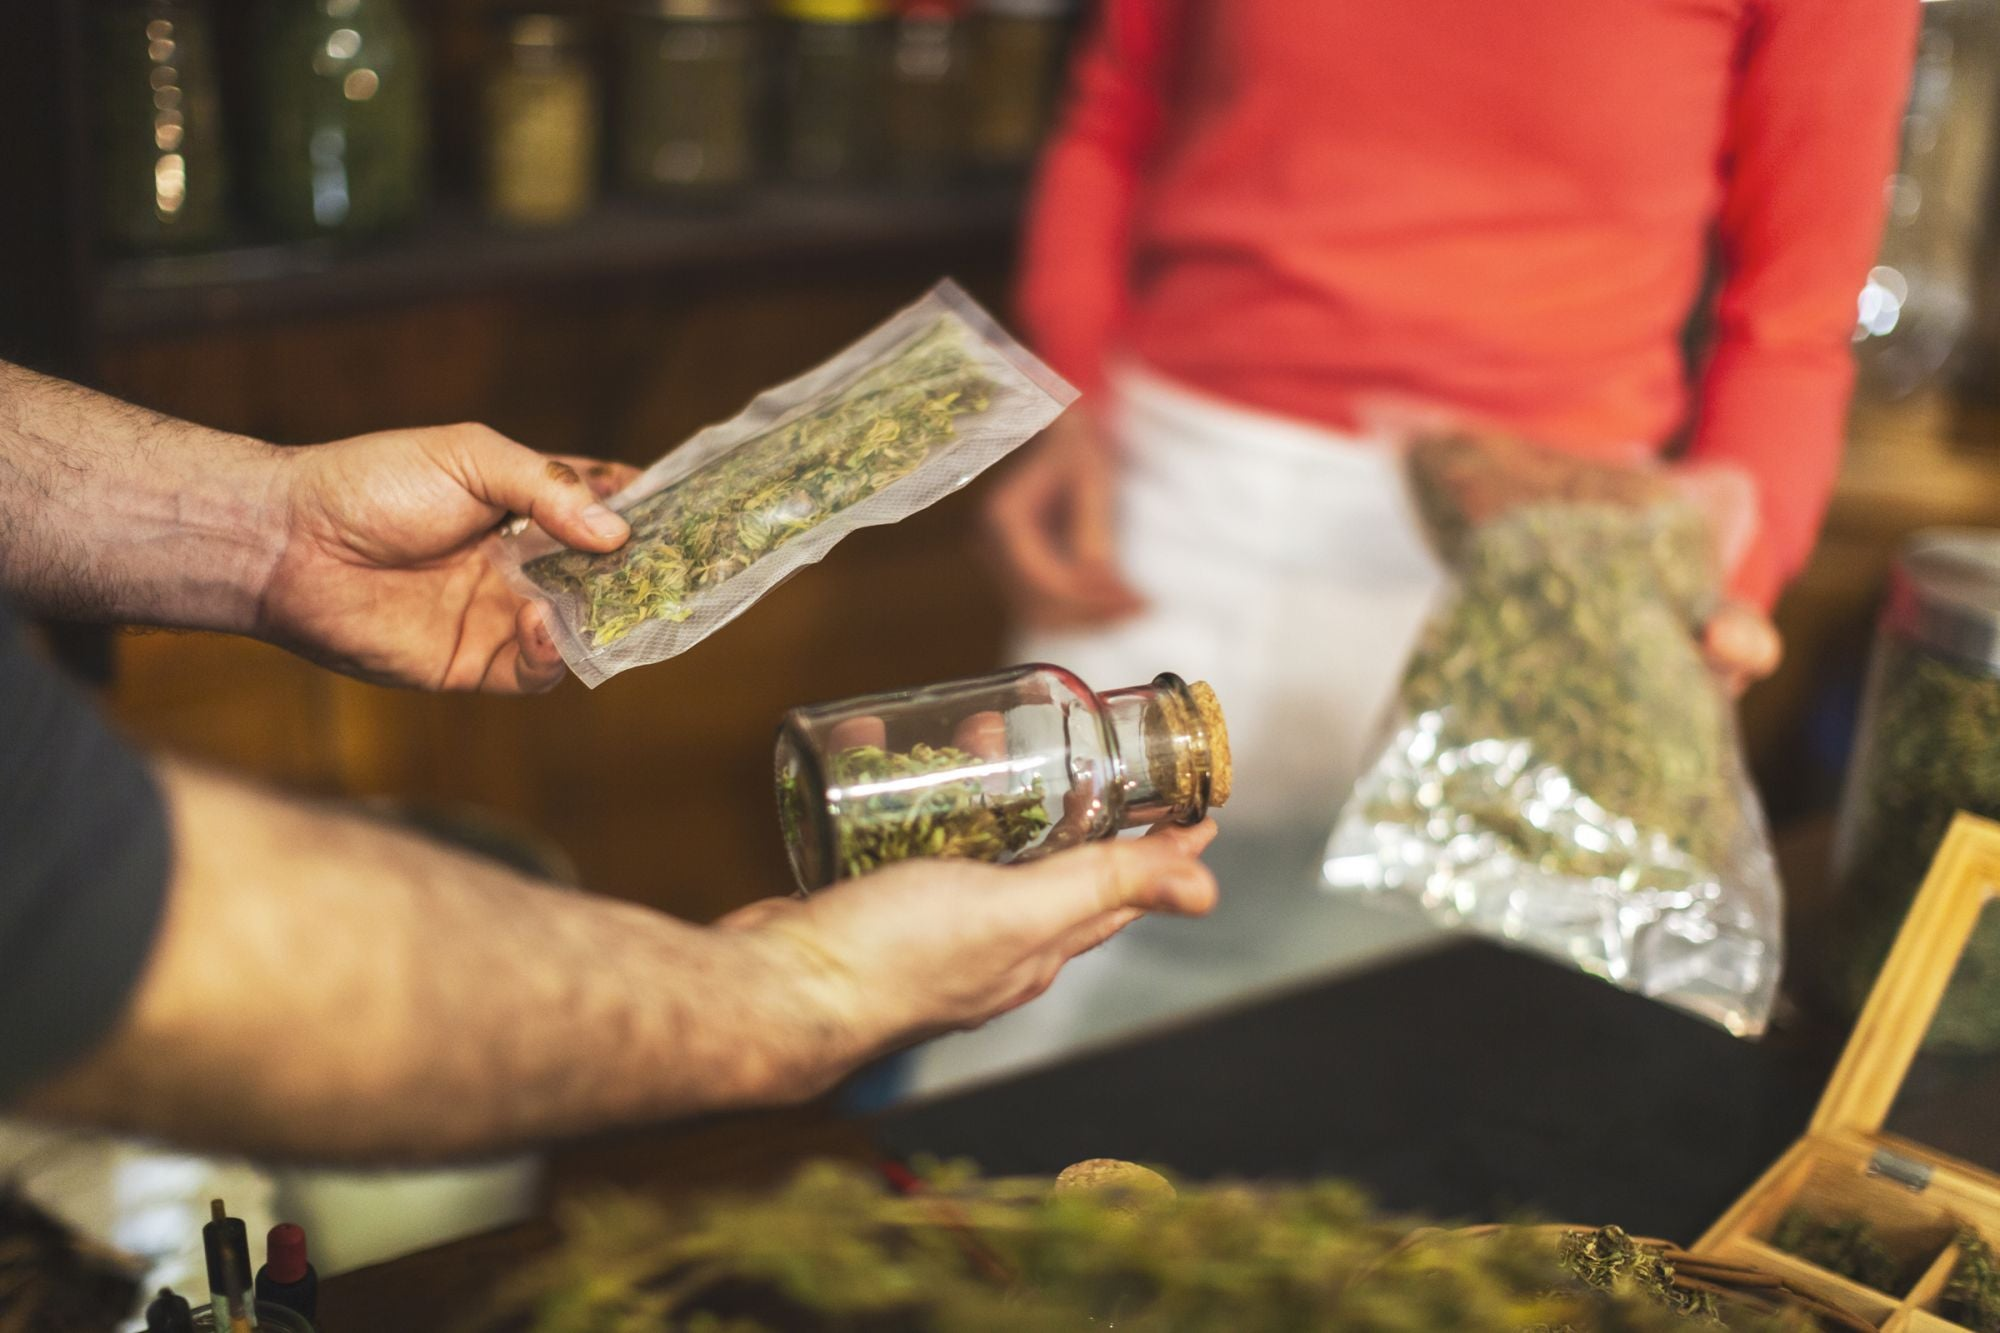 5 Best Practices for Retail Staffing in Cannabis